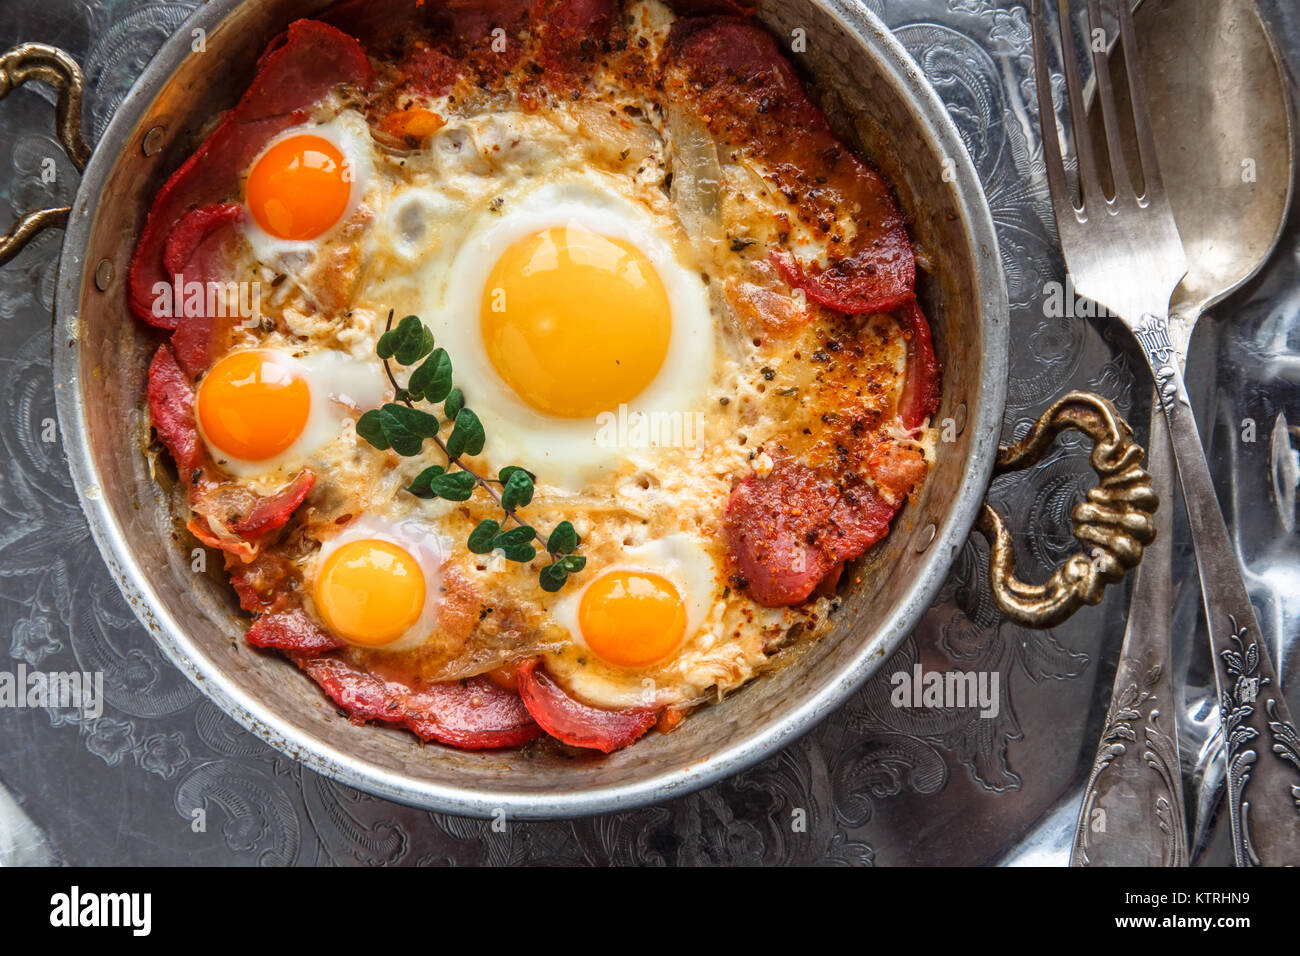 Closeup of Turkish pastirmali and fried egg in a copper pan on wooden table - Stock Image